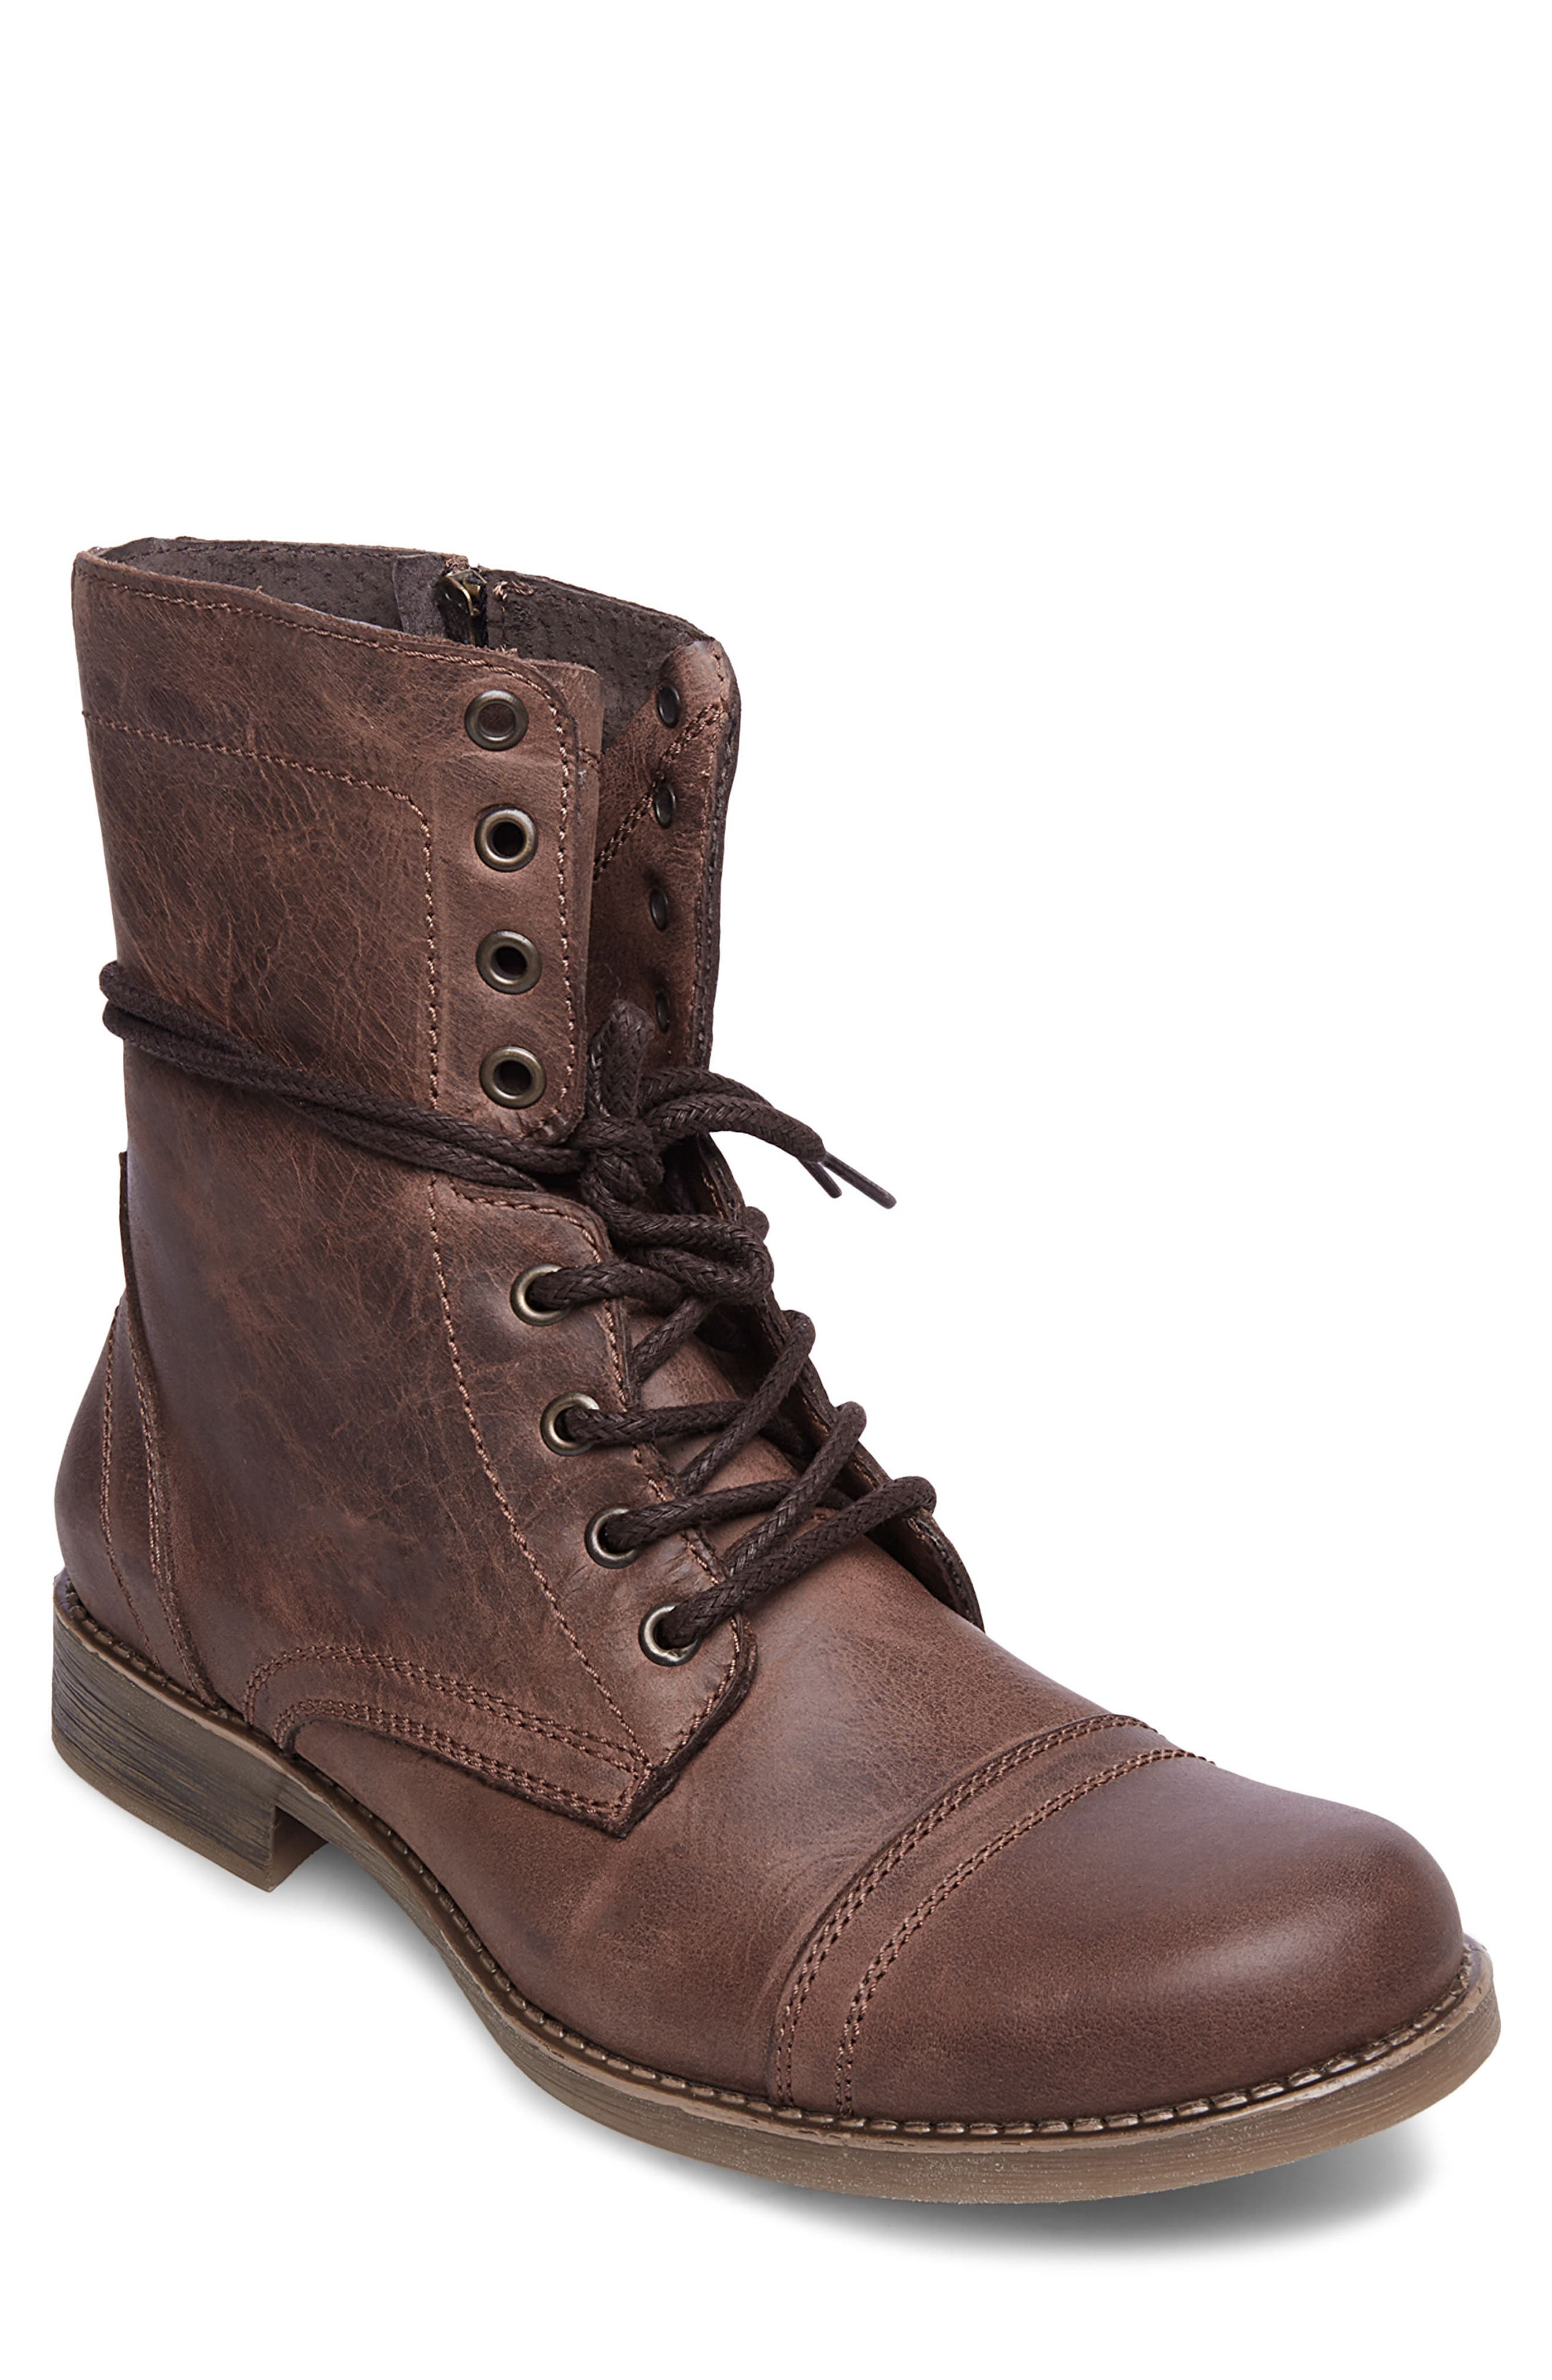 STEVE MADDEN, Troopah-C Cap Toe Boot, Main thumbnail 1, color, BROWN LEATHER